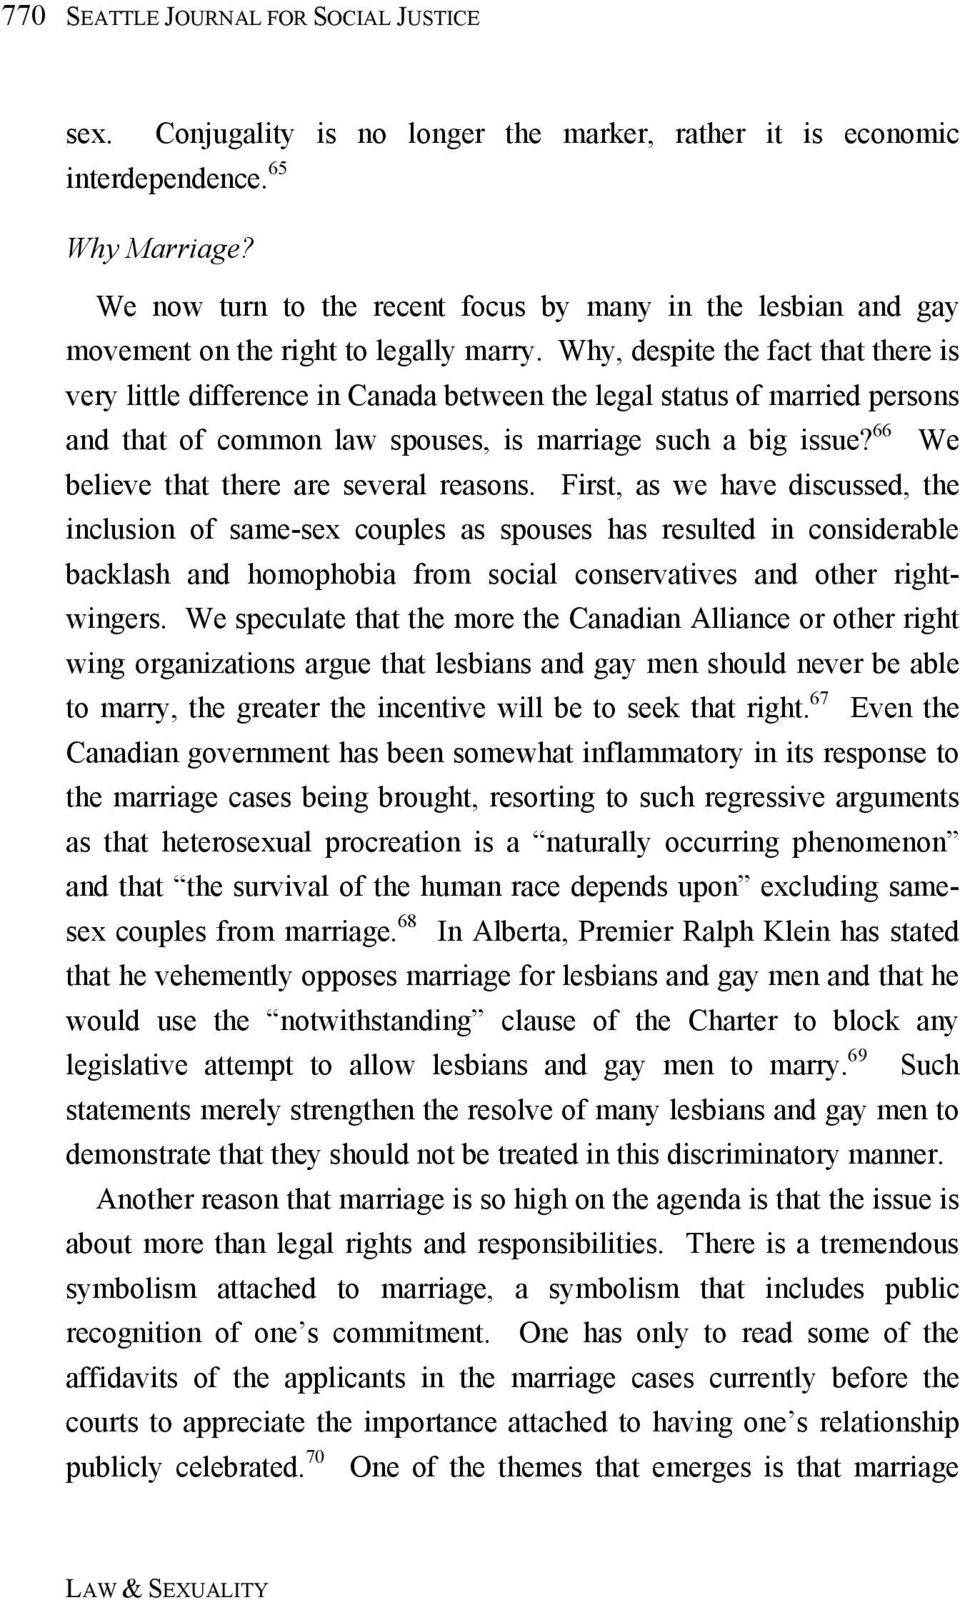 Why, despite the fact that there is very little difference in Canada between the legal status of married persons and that of common law spouses, is marriage such a big issue?